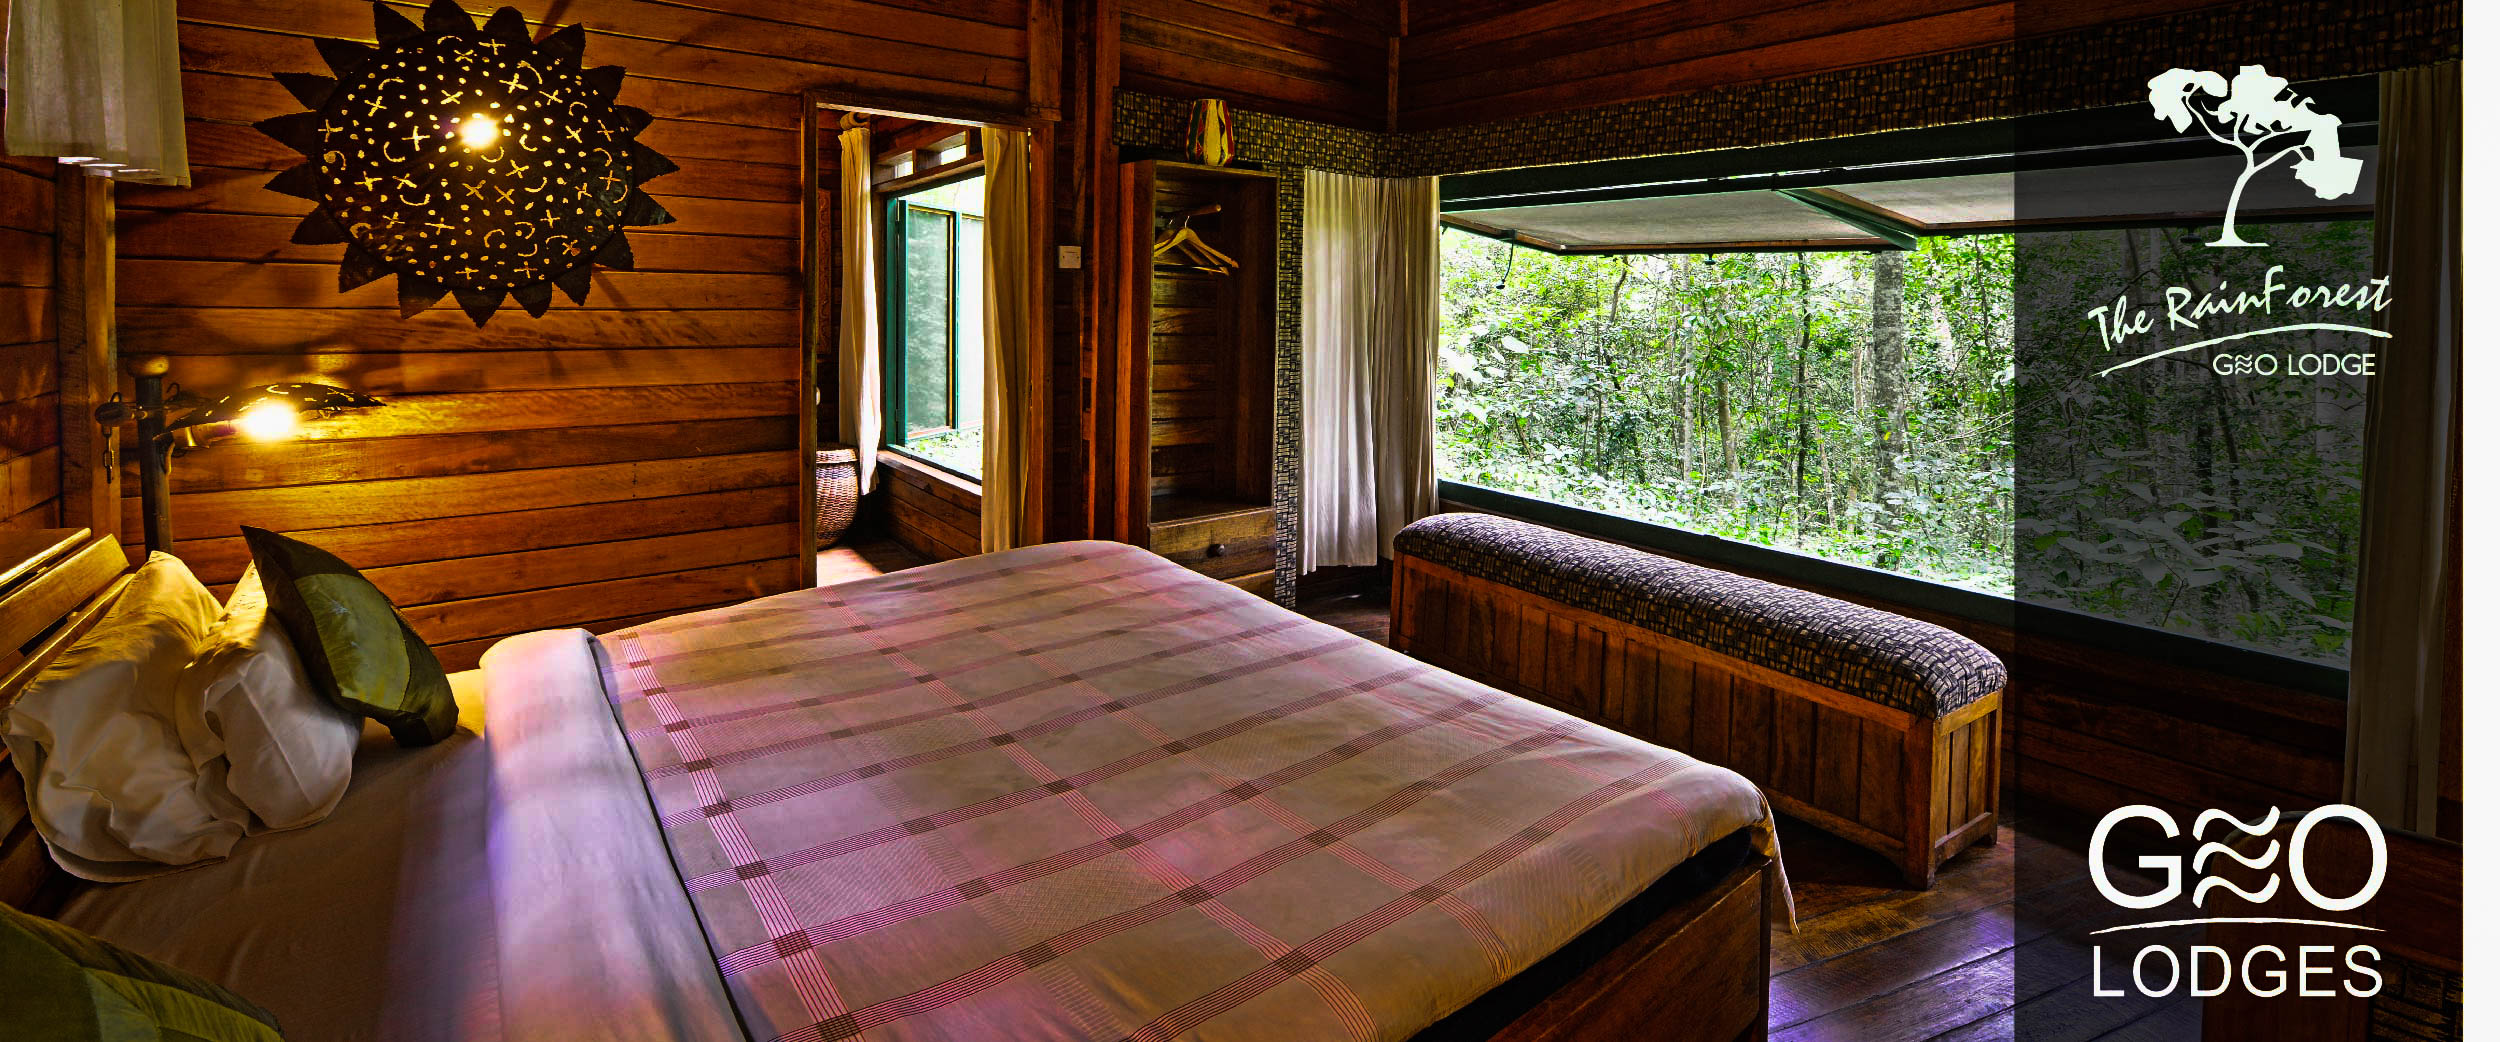 The RainForest Lodge - Uganda's only forest lodge